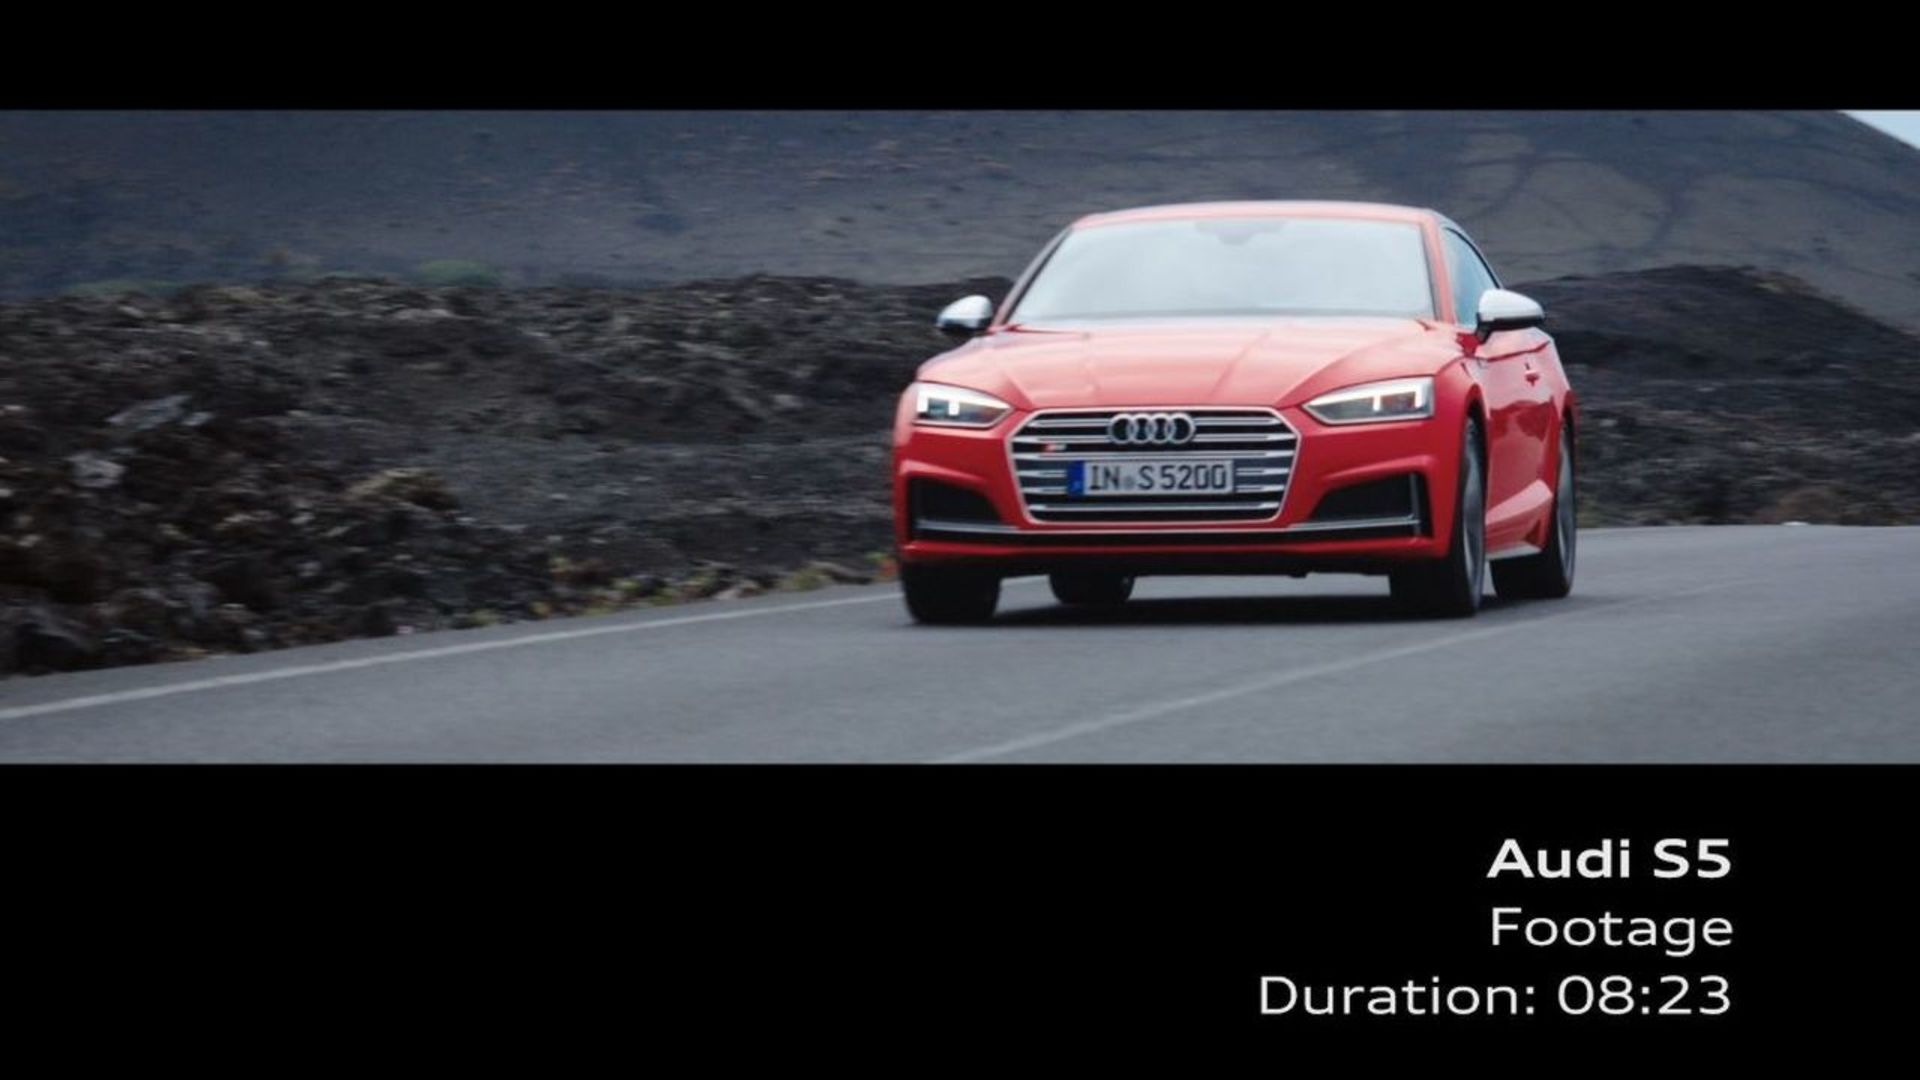 Audi S5 Coupé – Footage